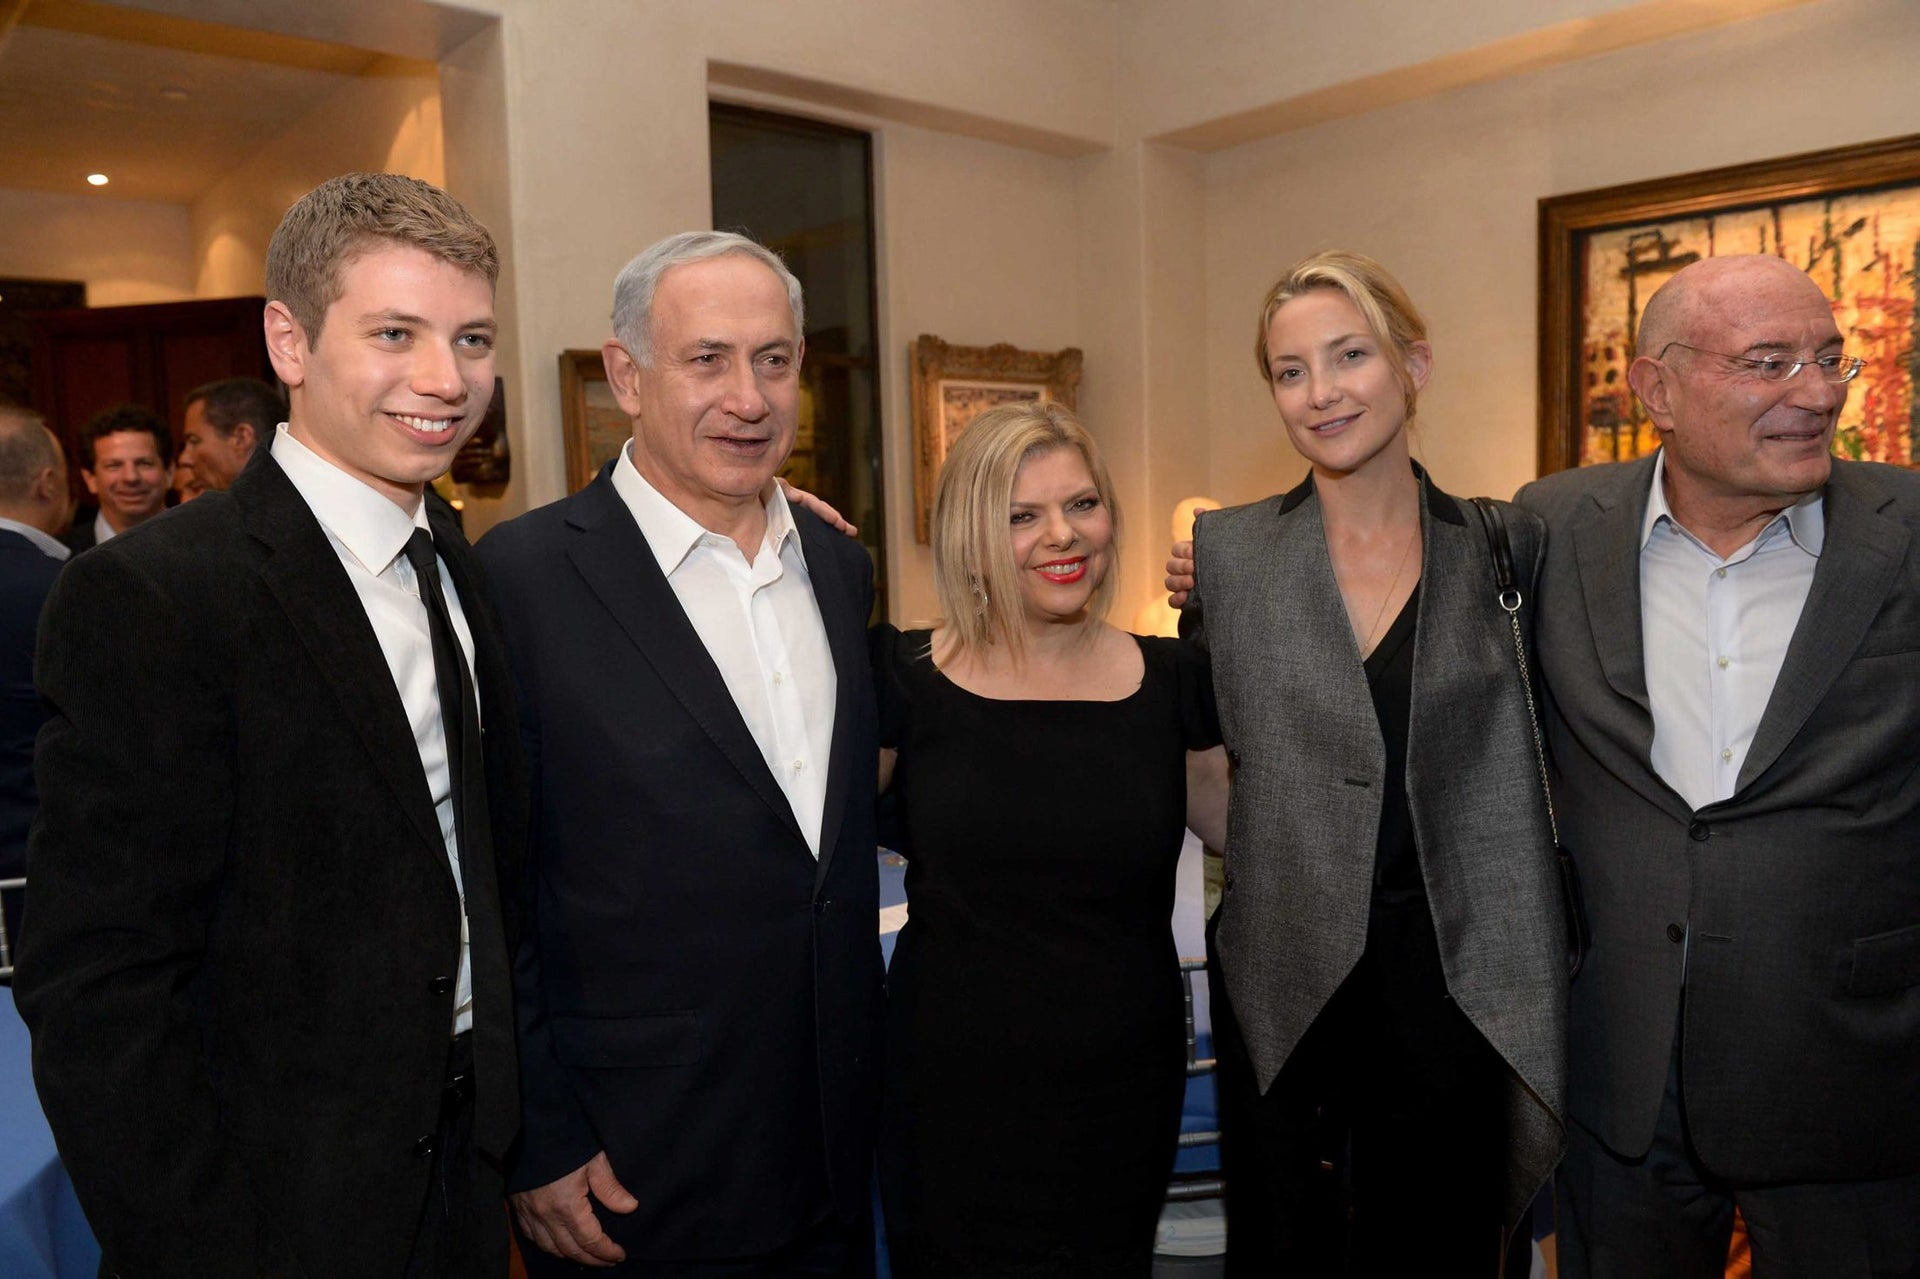 PM Benjamin Netanyahu, wife Sara, and son Yair with actress Kate Hudson and producer Arnon Milchan in 2014.